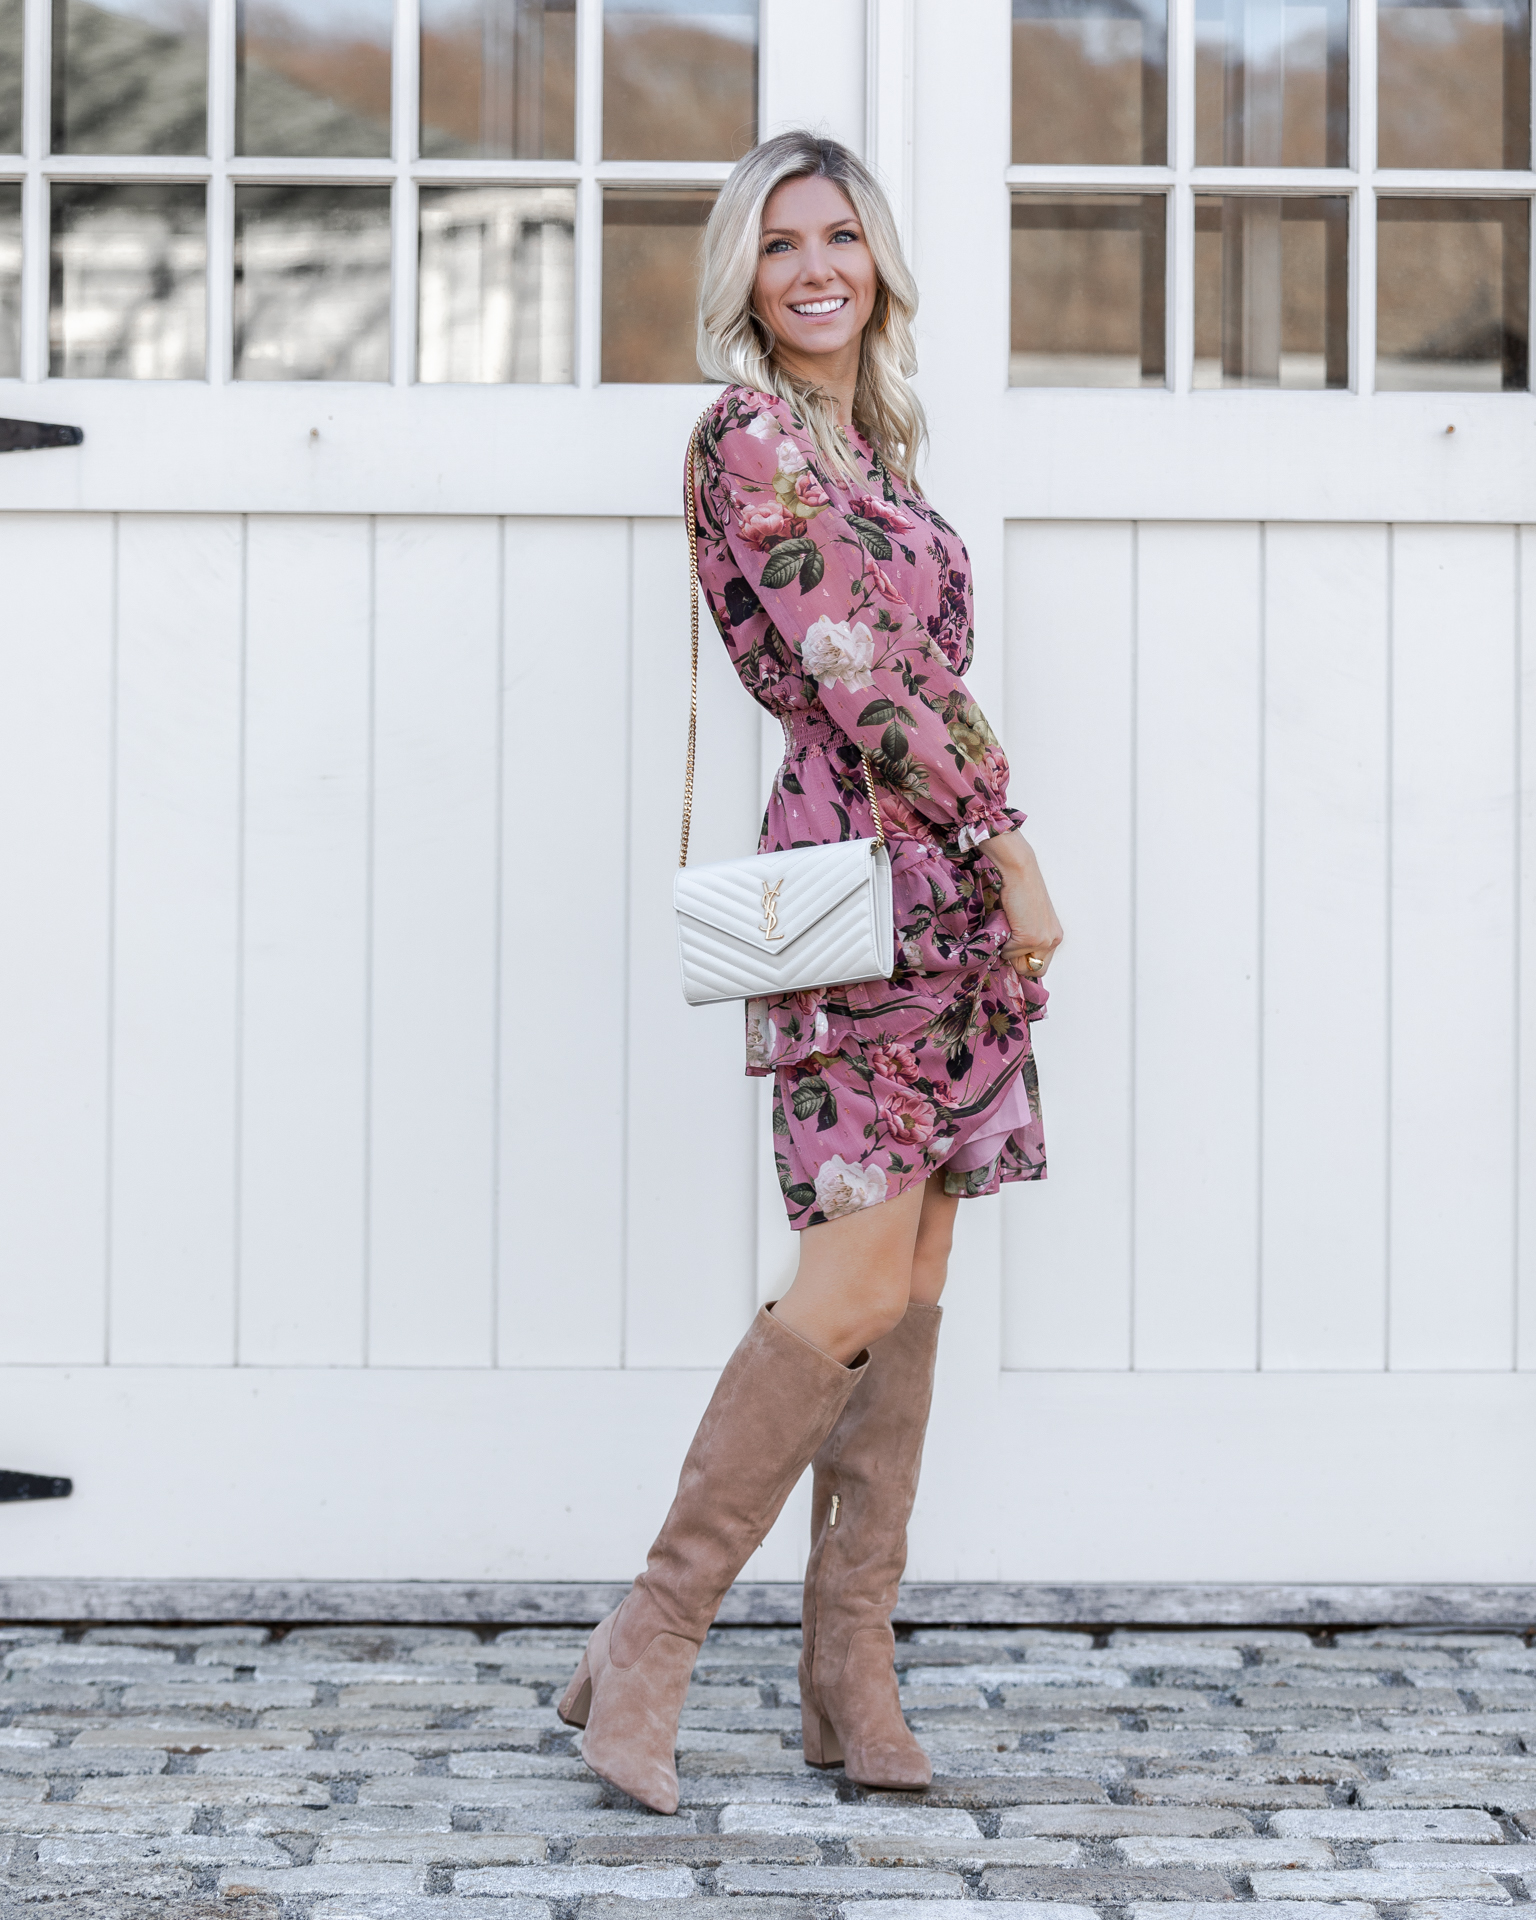 pink-floral-dress-and-over-the-knee-boots-the-glamorous-gal